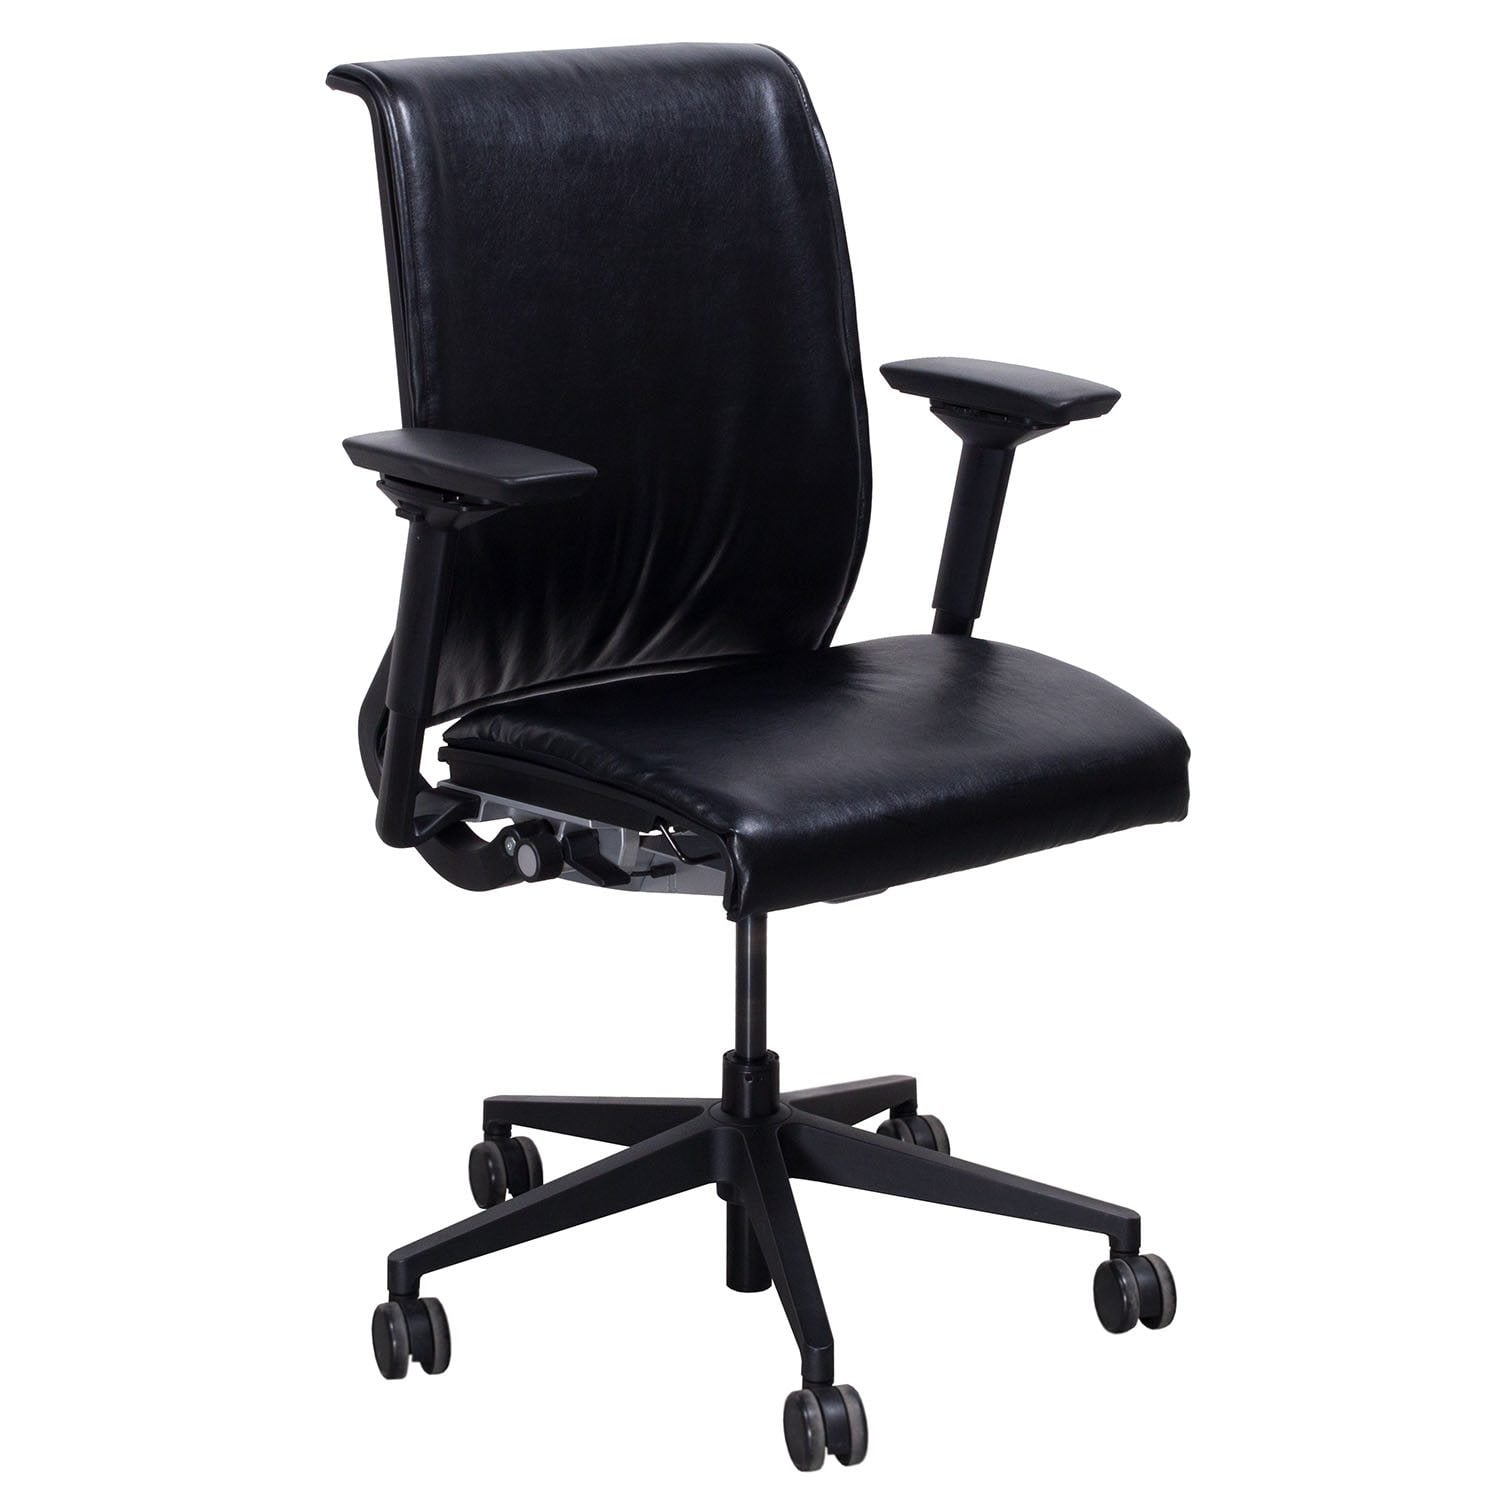 used office chairs carpet chair mat no lip steelcase think leather task black national